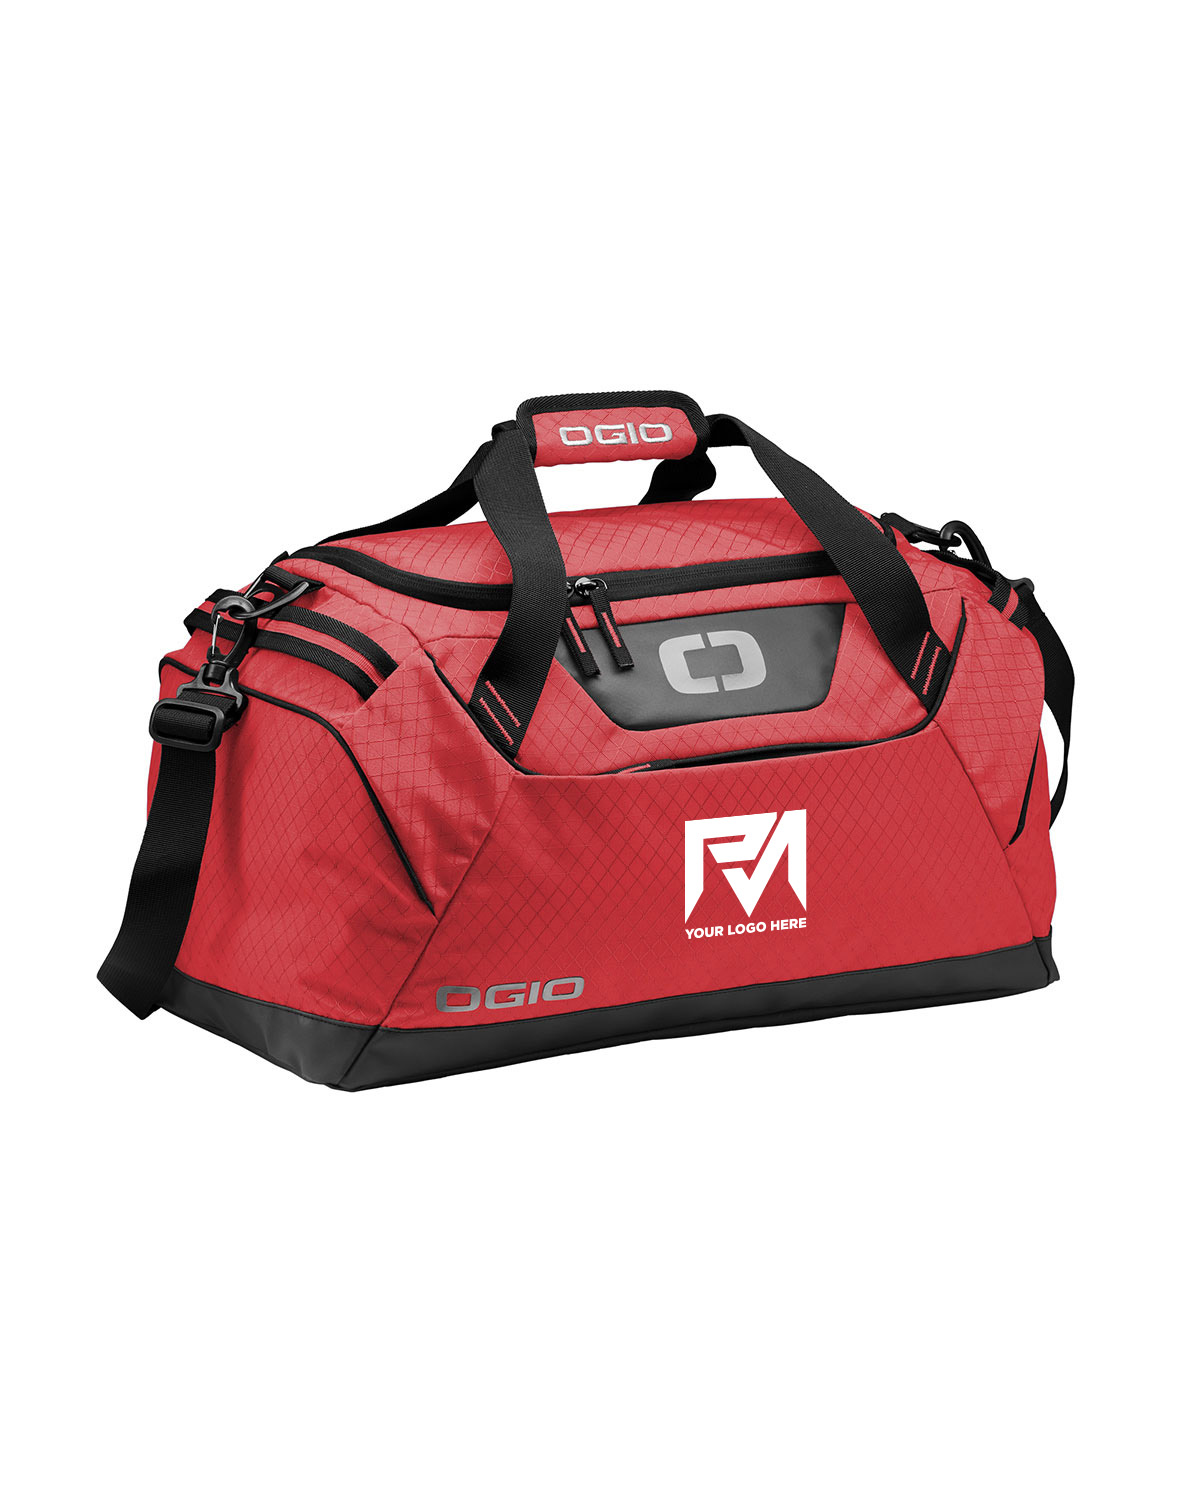 Ogio 95001 Catalyst Duffel